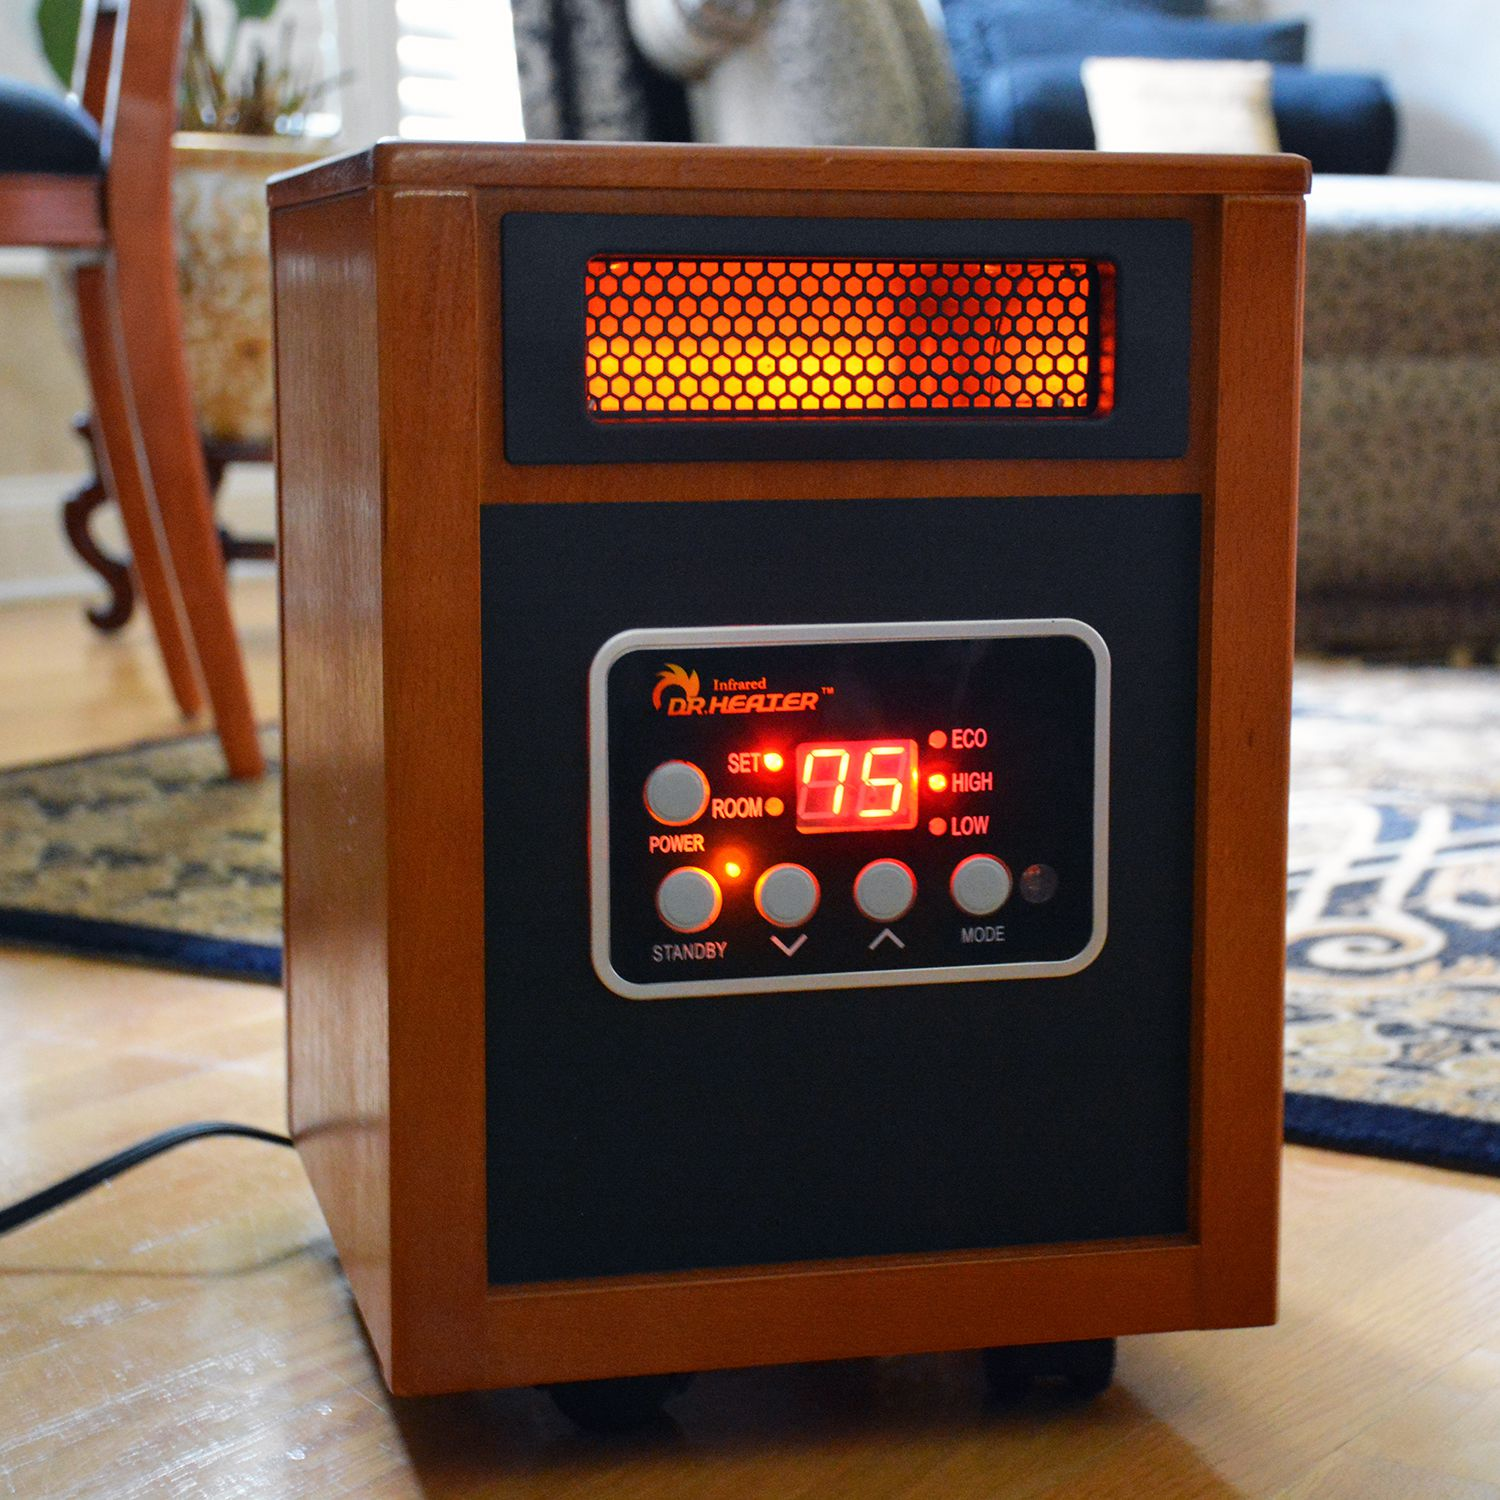 Electrical Home Design Ideas: Dr. Infrared Heater Portable Space Heater Review